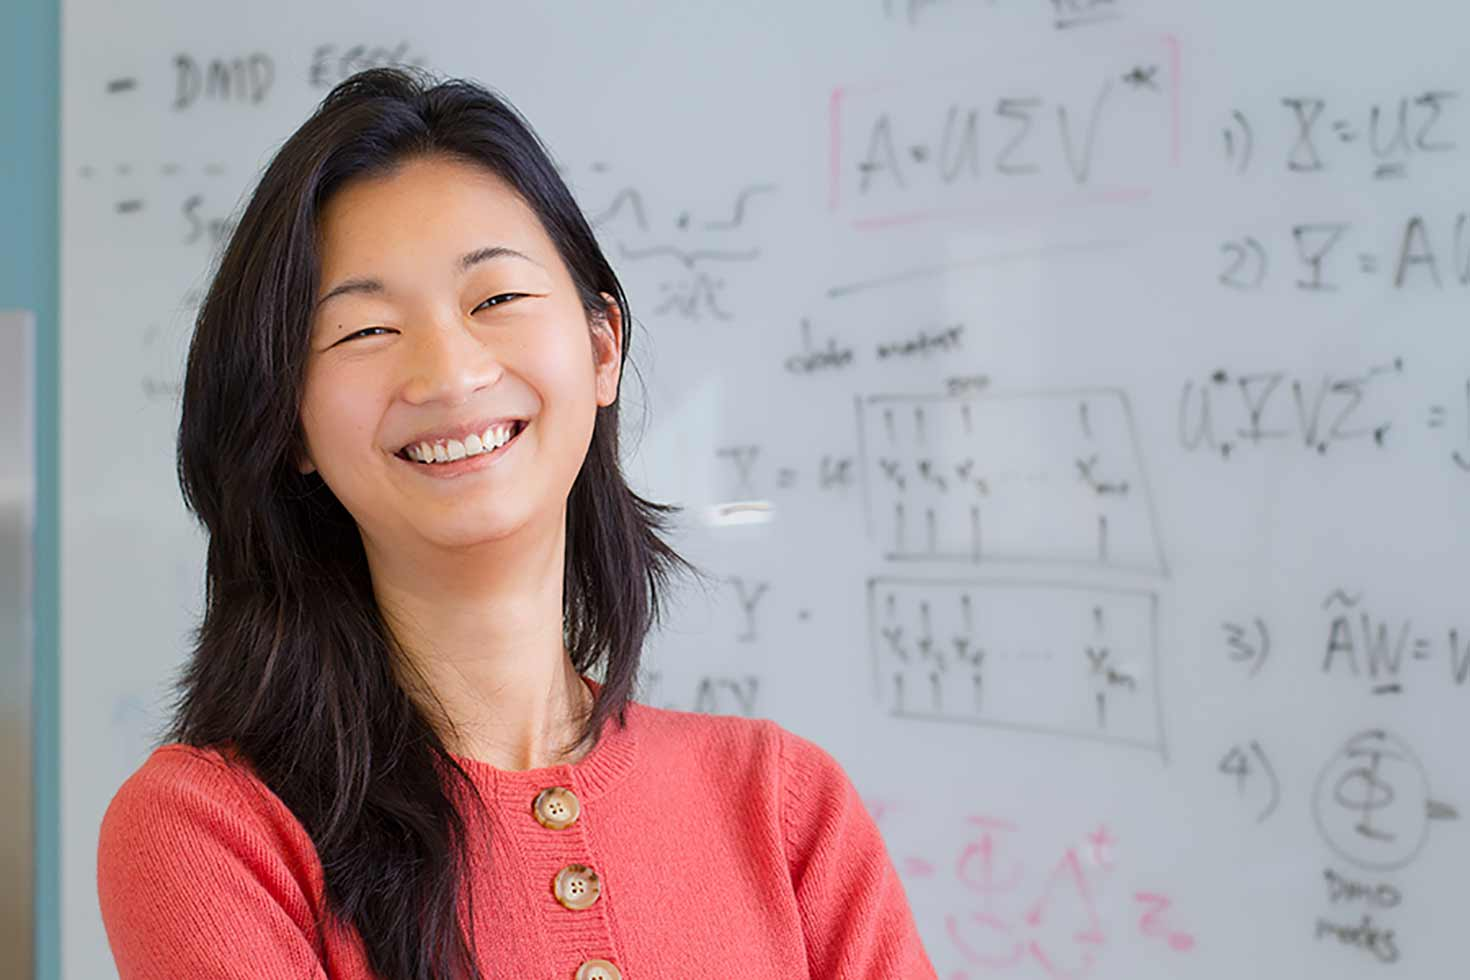 Faculty member standing in front of white board covered in equations and diagrams